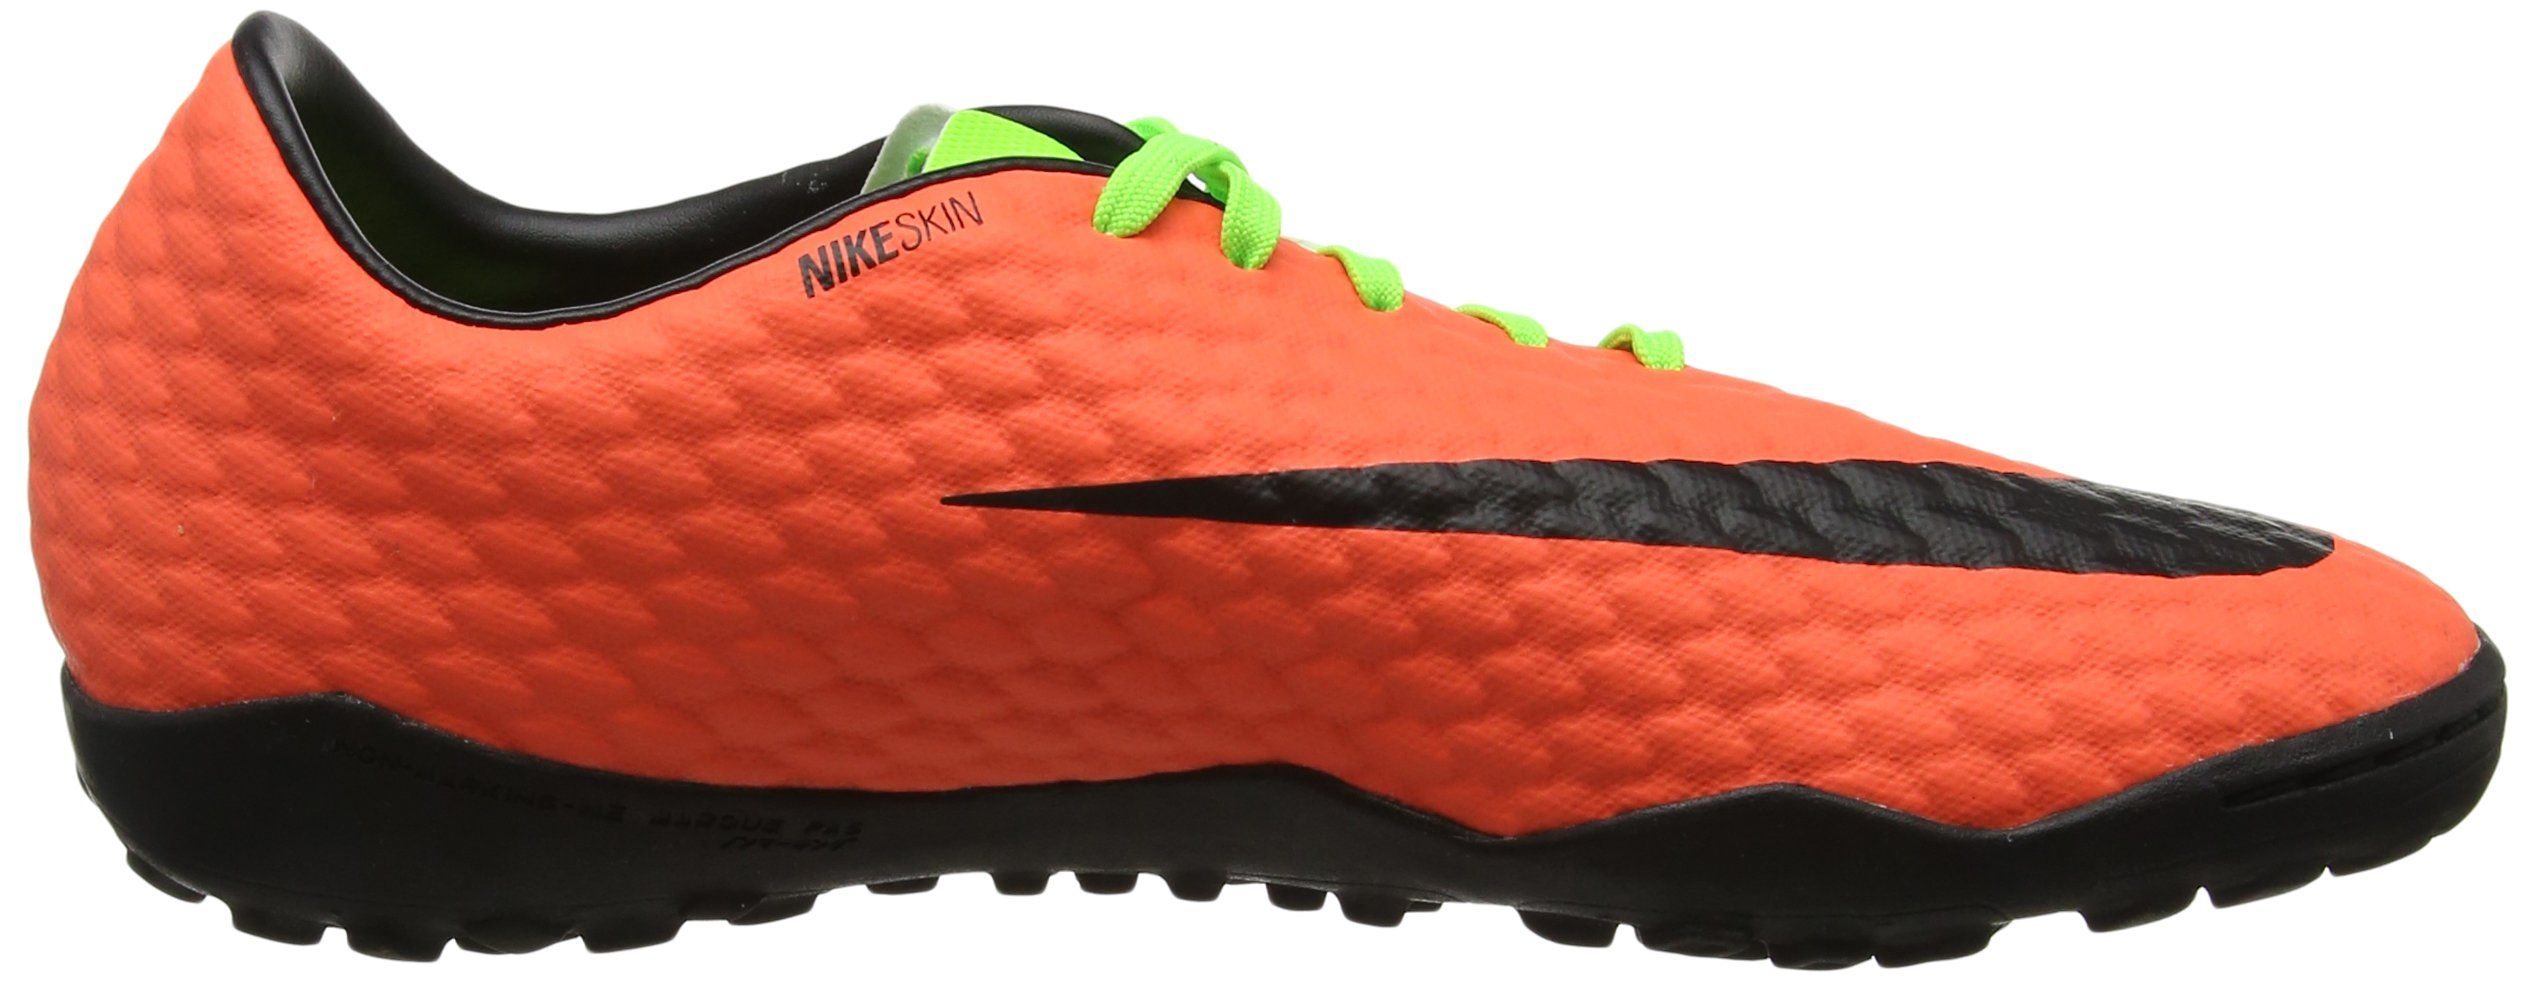 Nike Mens HyperVenomX Phelon III TF Turf Soccer Shoes Sz. 11.5 Electric  Green Hyper Orange